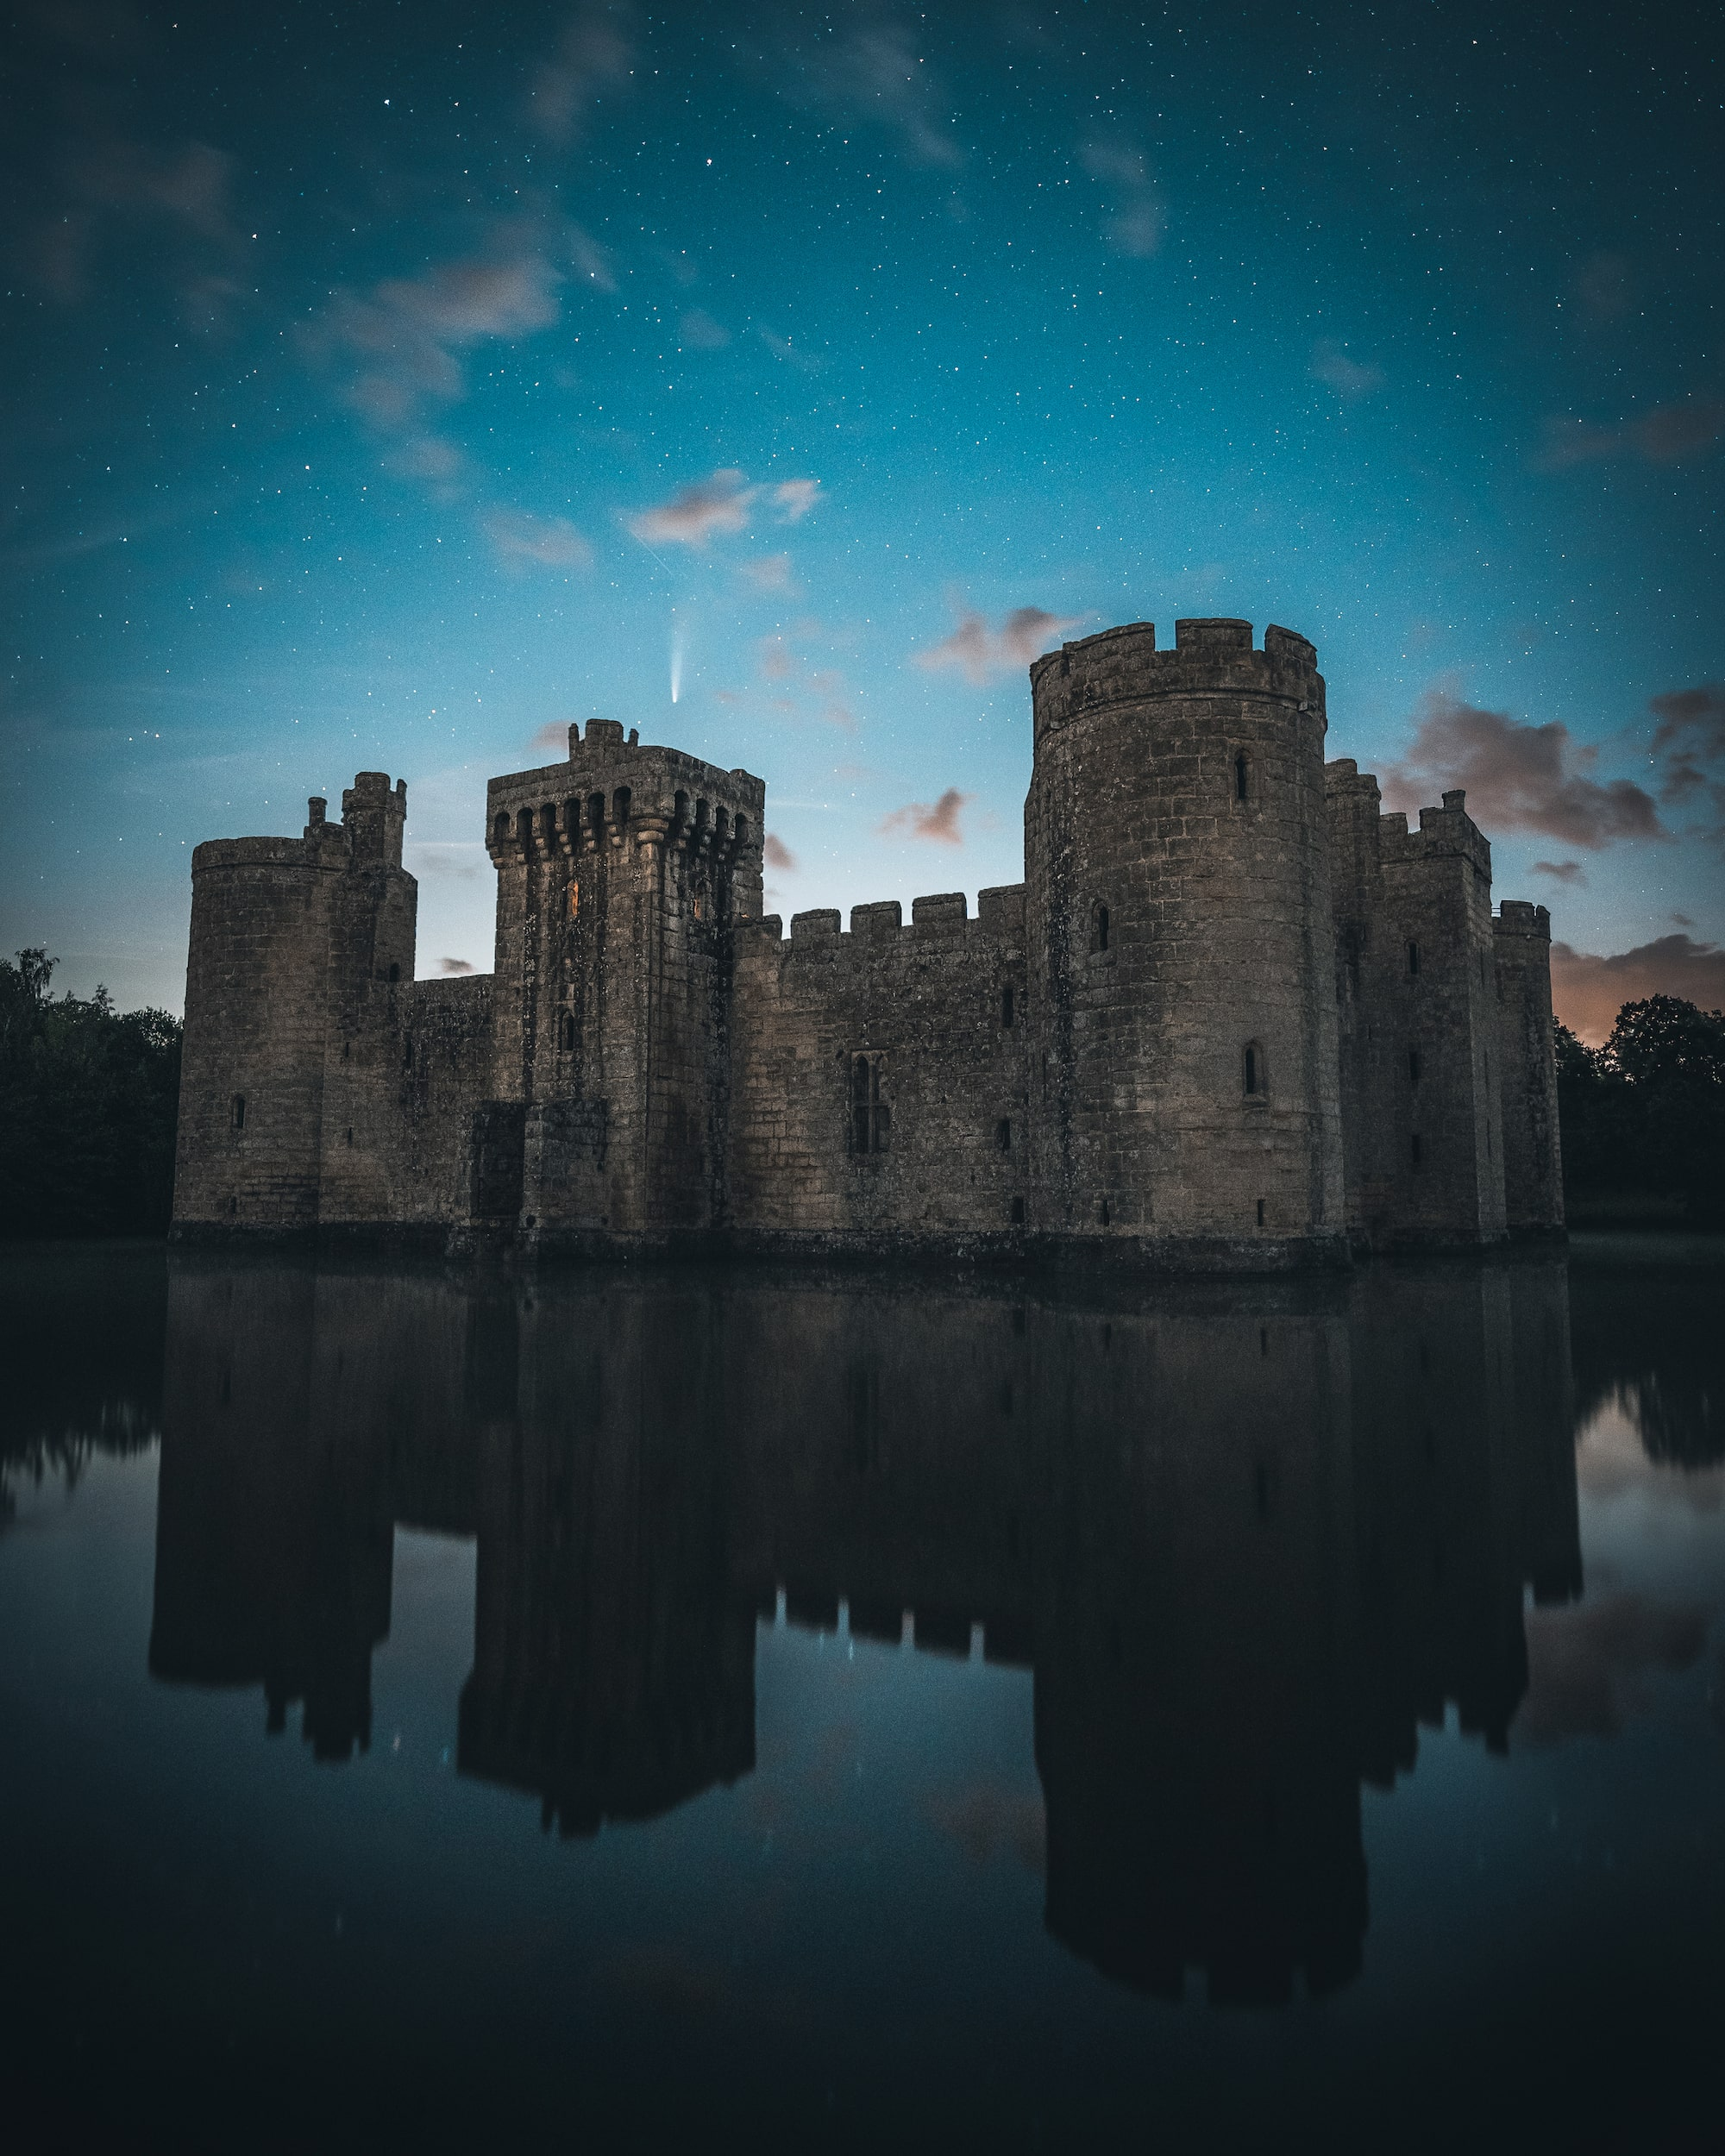 mike will sony alpha 7M3 bodiam castle at night